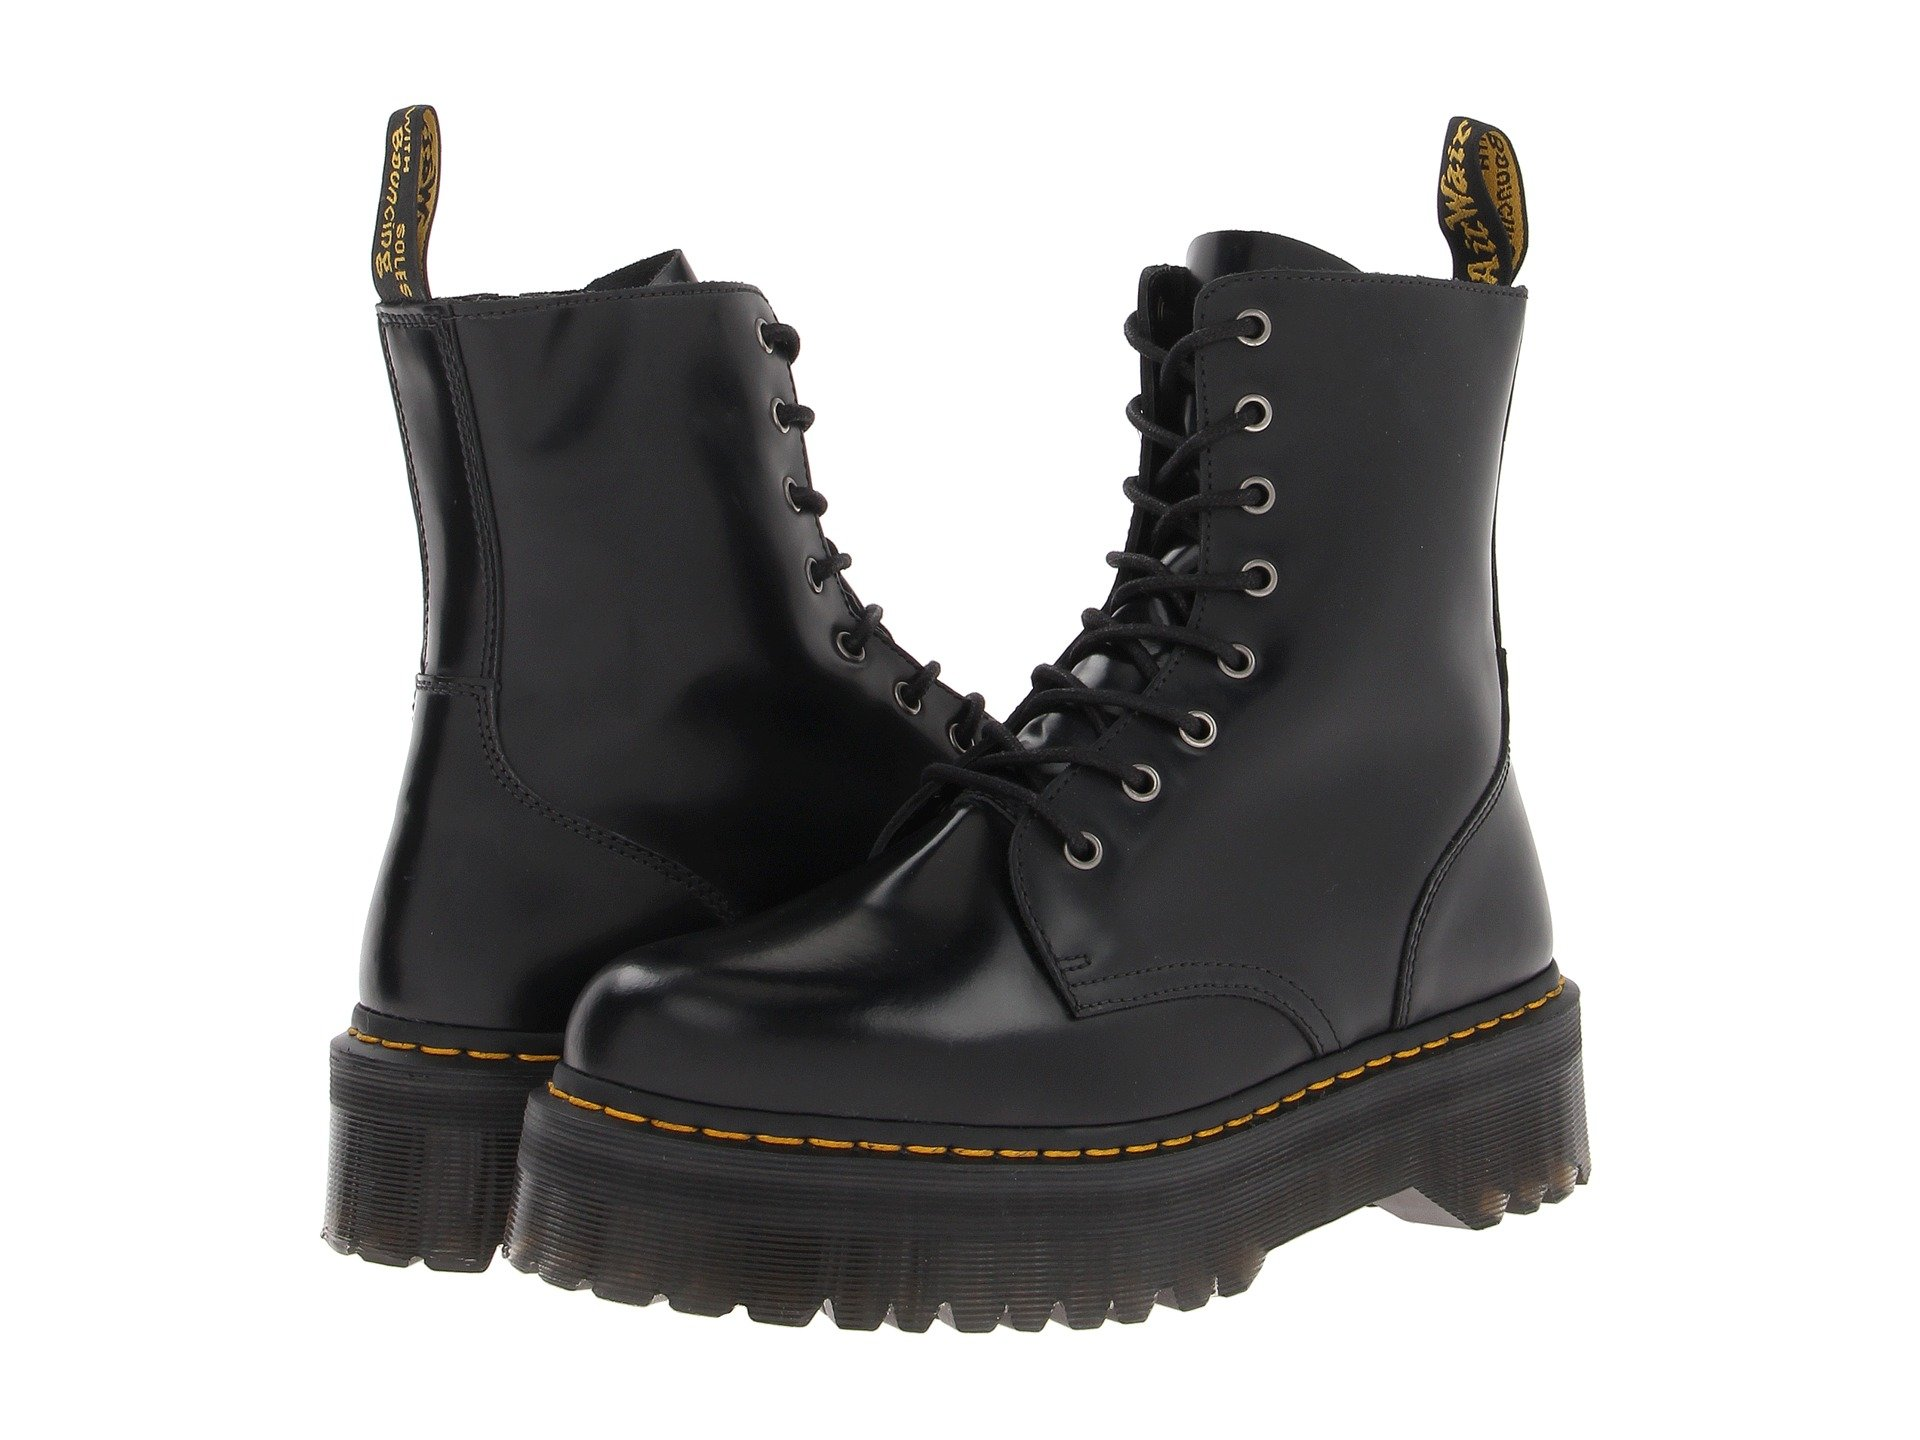 12bce66214 Men's Dr. Martens Boots + FREE SHIPPING | Shoes | Zappos.com